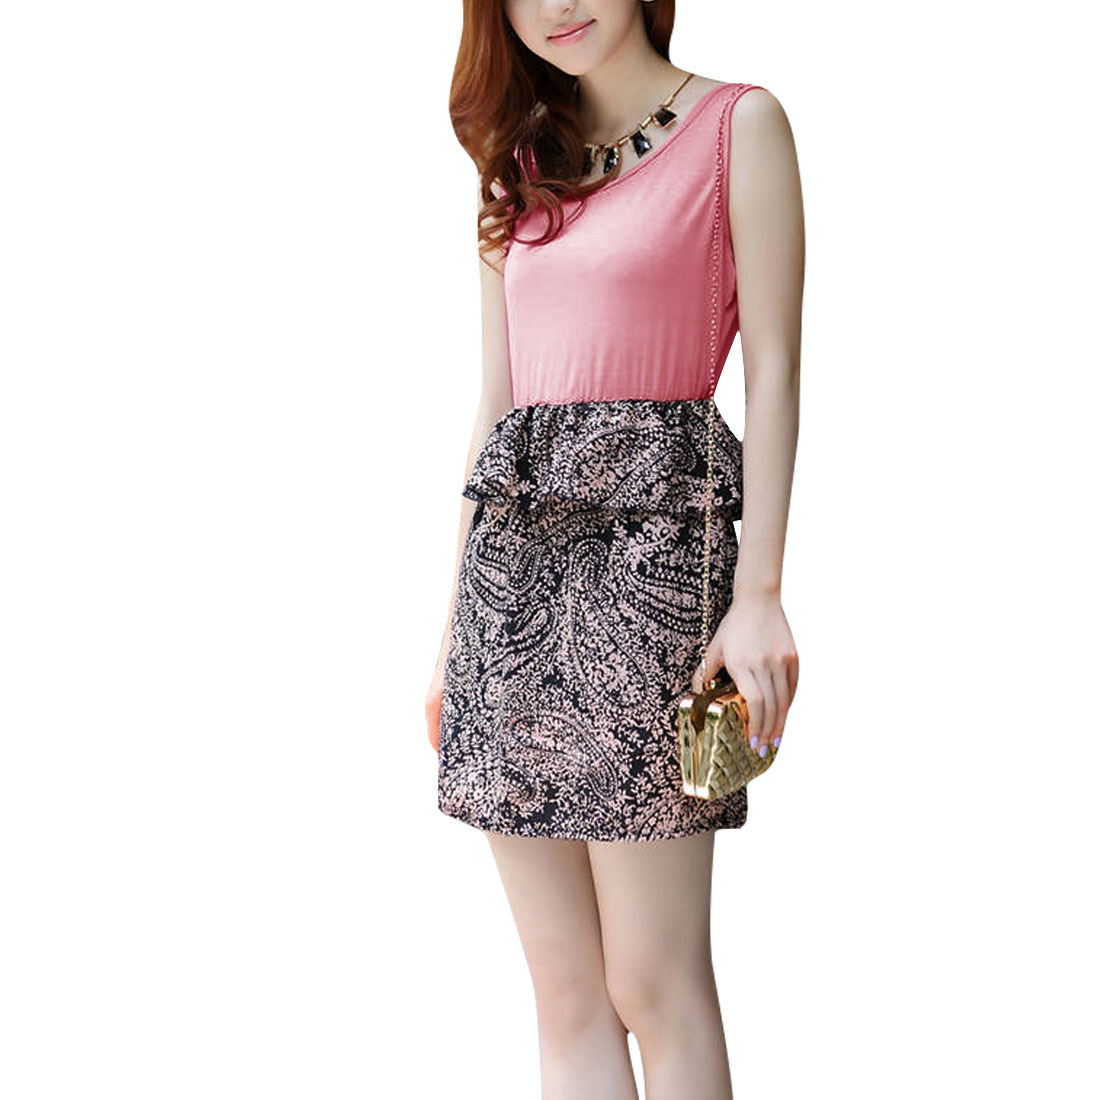 Lady Scoop Neck Paisleys Pattern Above Knee Dress Pink XS